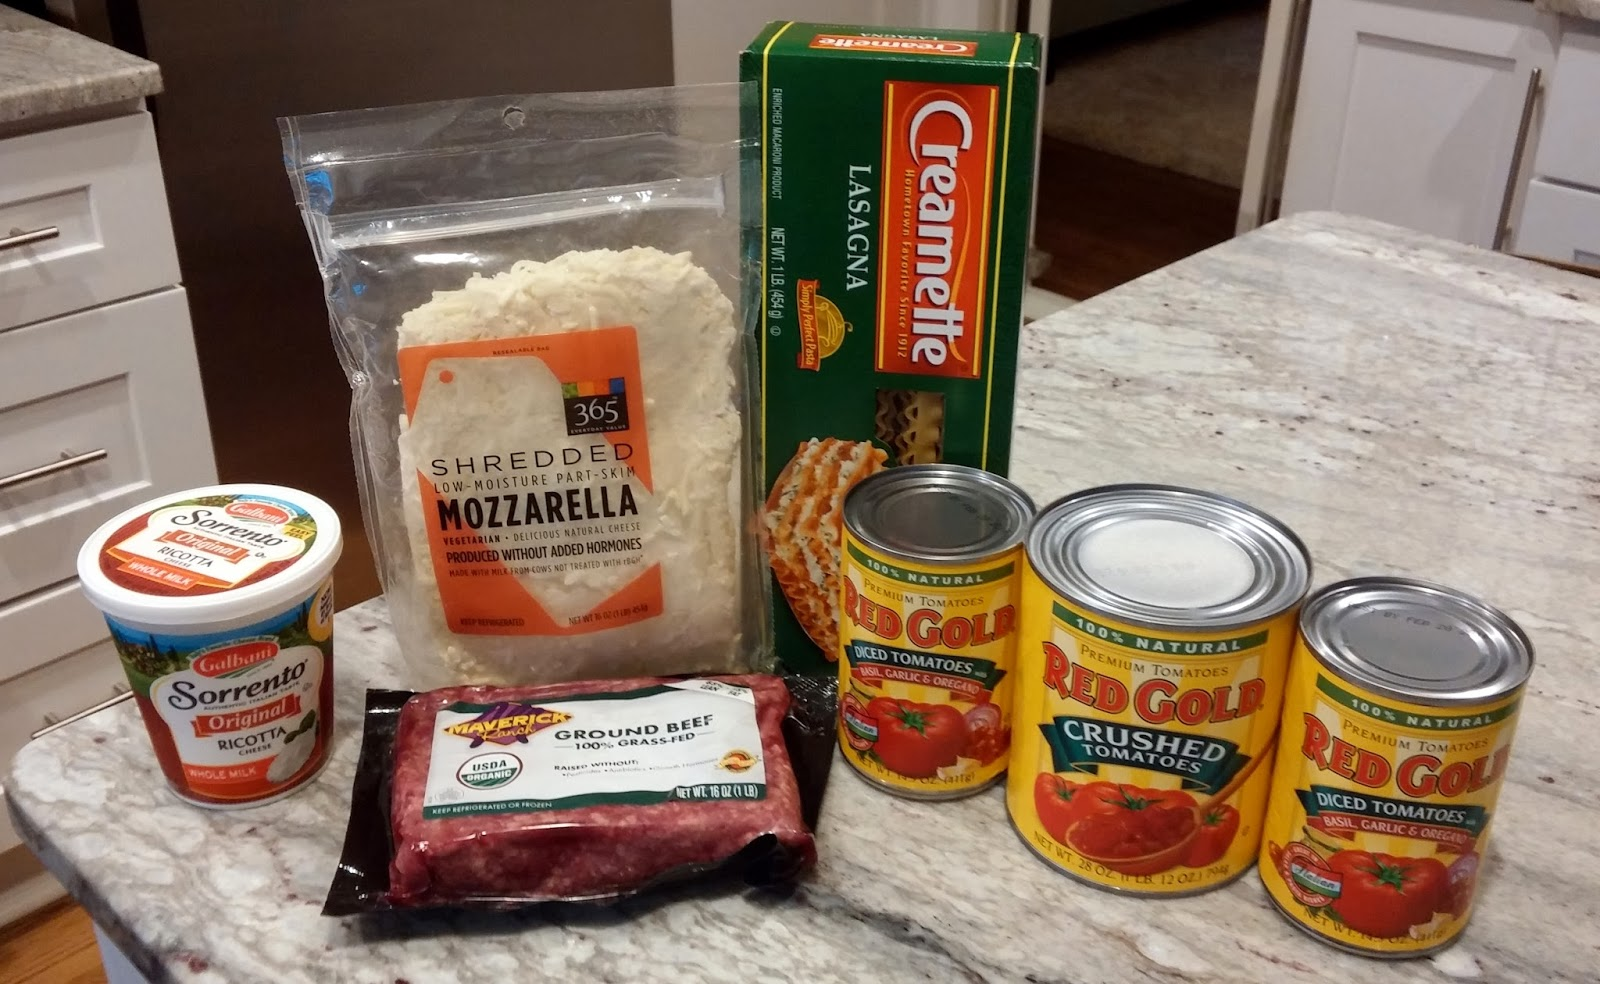 Weeknight lasagna recipe ingredients - ricotta, mozzarella, beef, noodles and Red Gold tomatoes